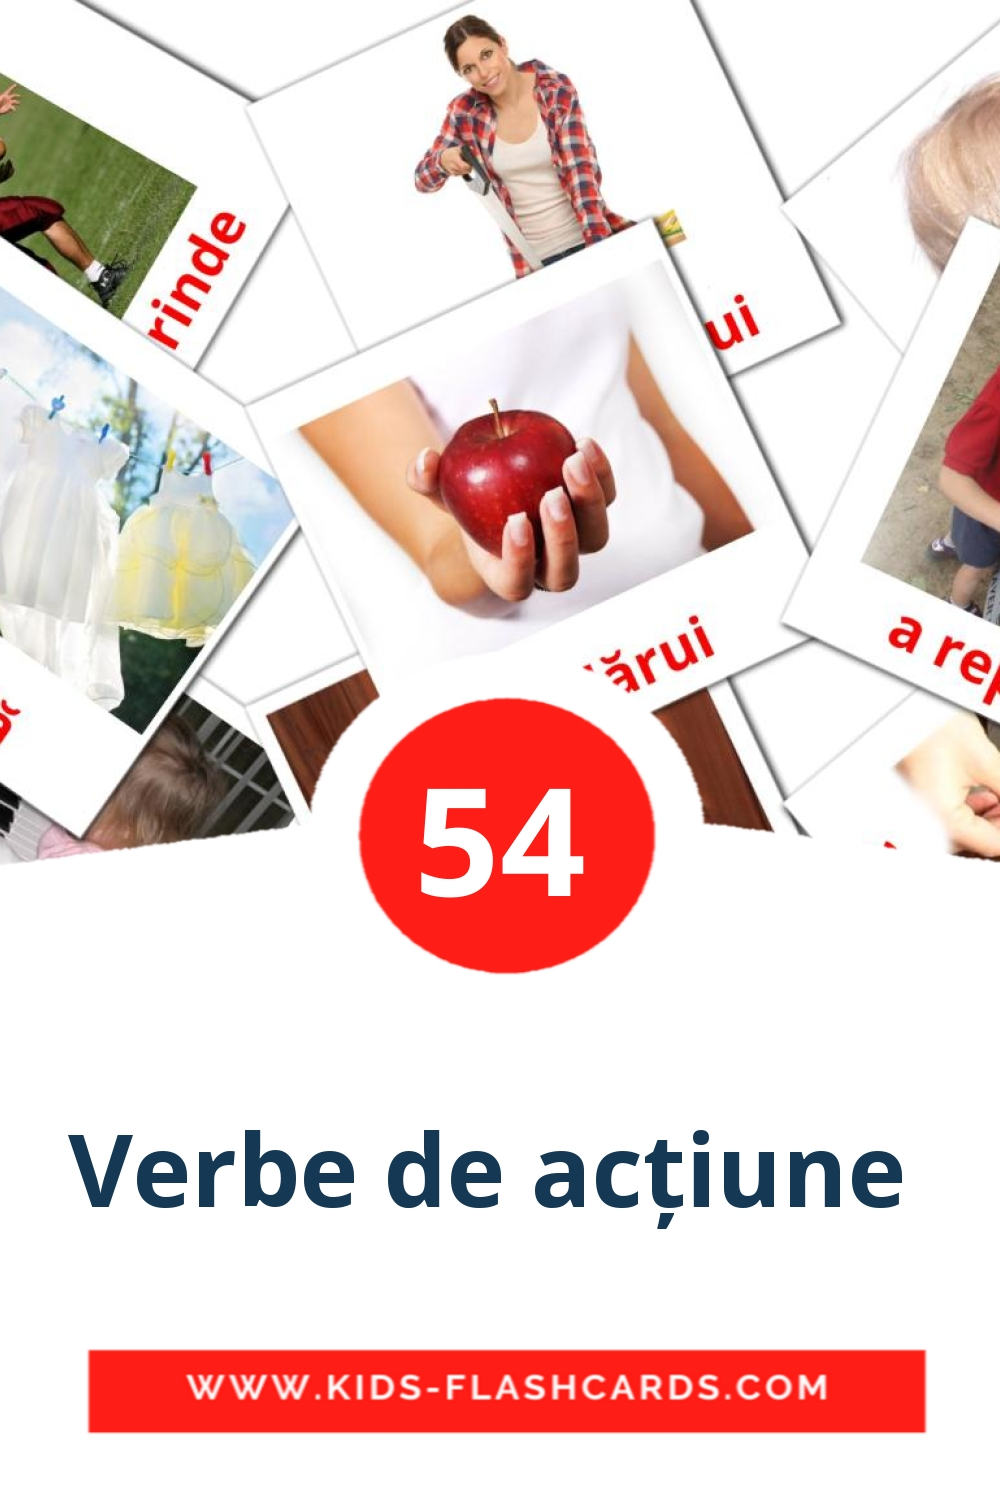 55 Verbe de acțiune  Picture Cards for Kindergarden in romanian